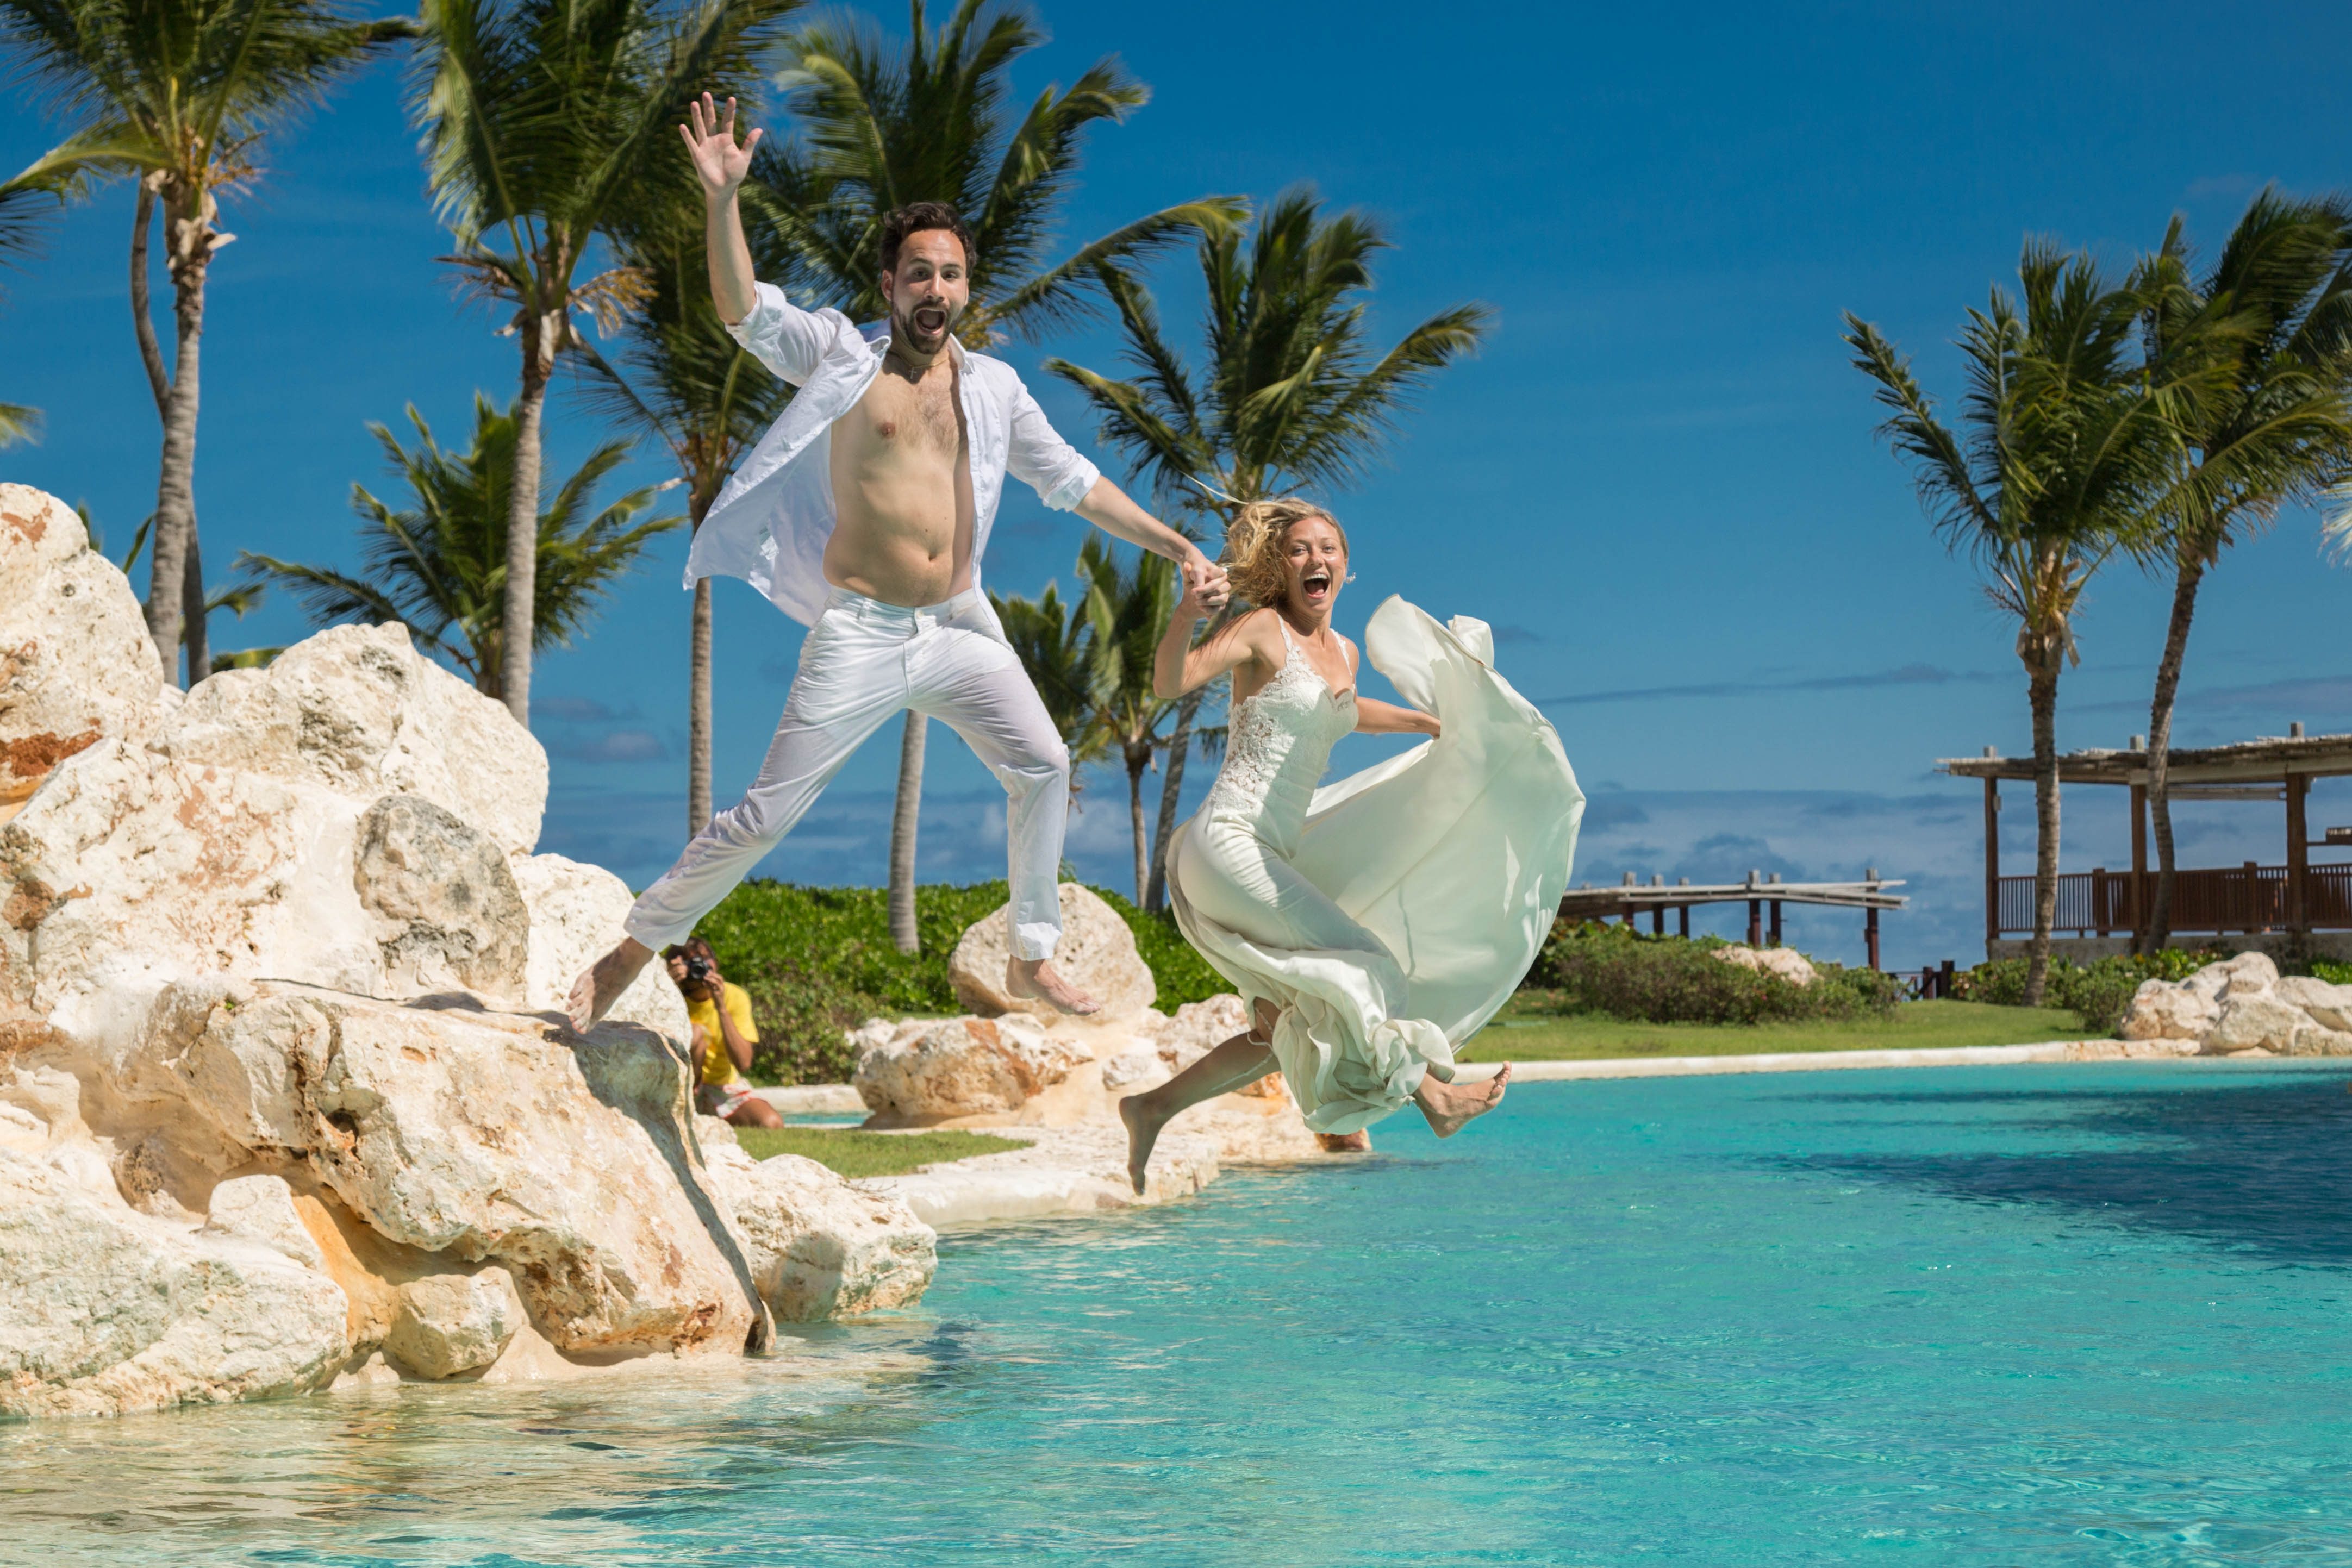 Punta cana wedding photographer martin sebastian sanctuary cap cana alsol resort republica dominicana 149